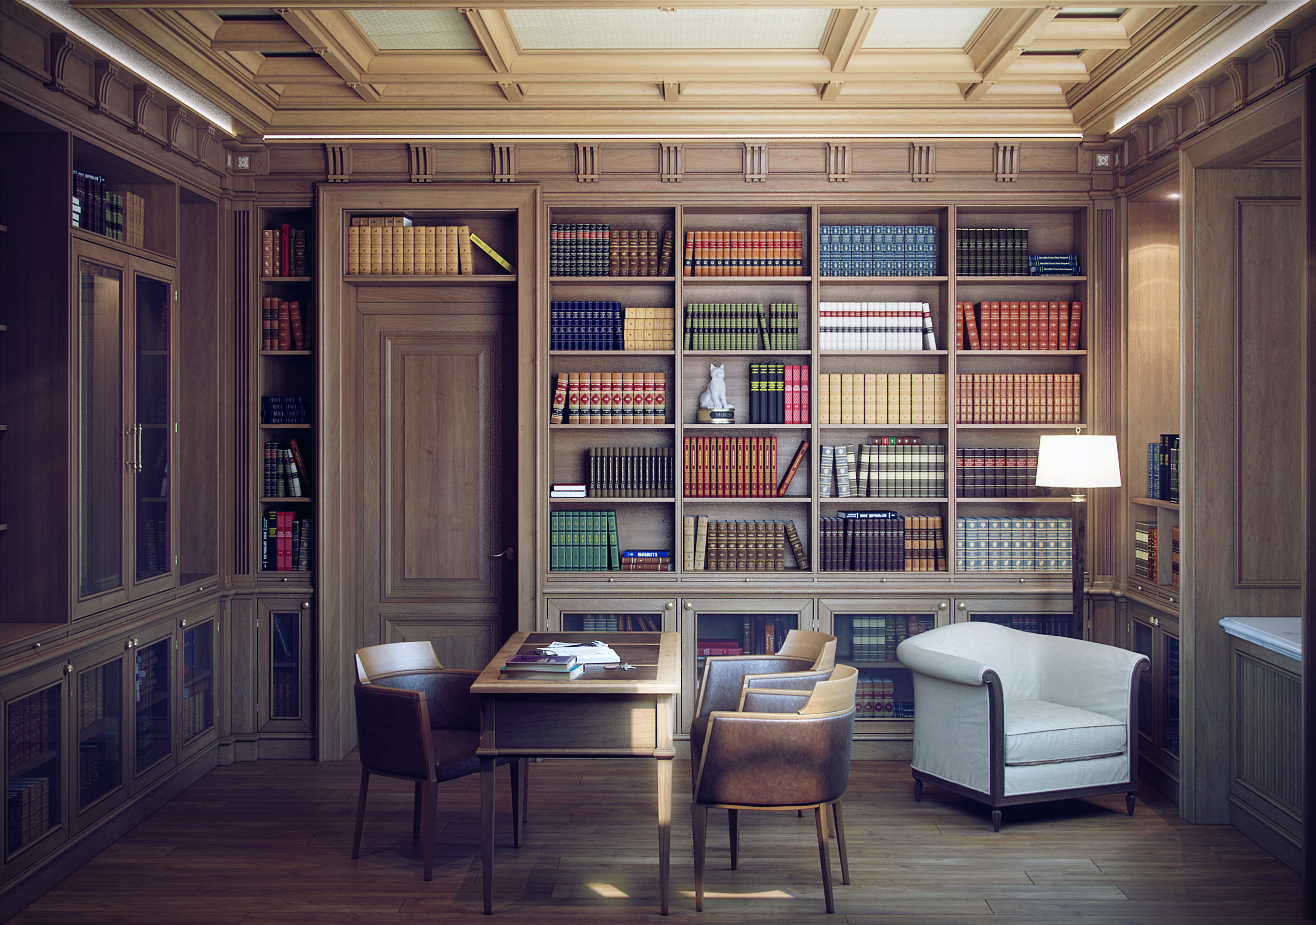 Mini biblioteca in un appartamento: idee di design